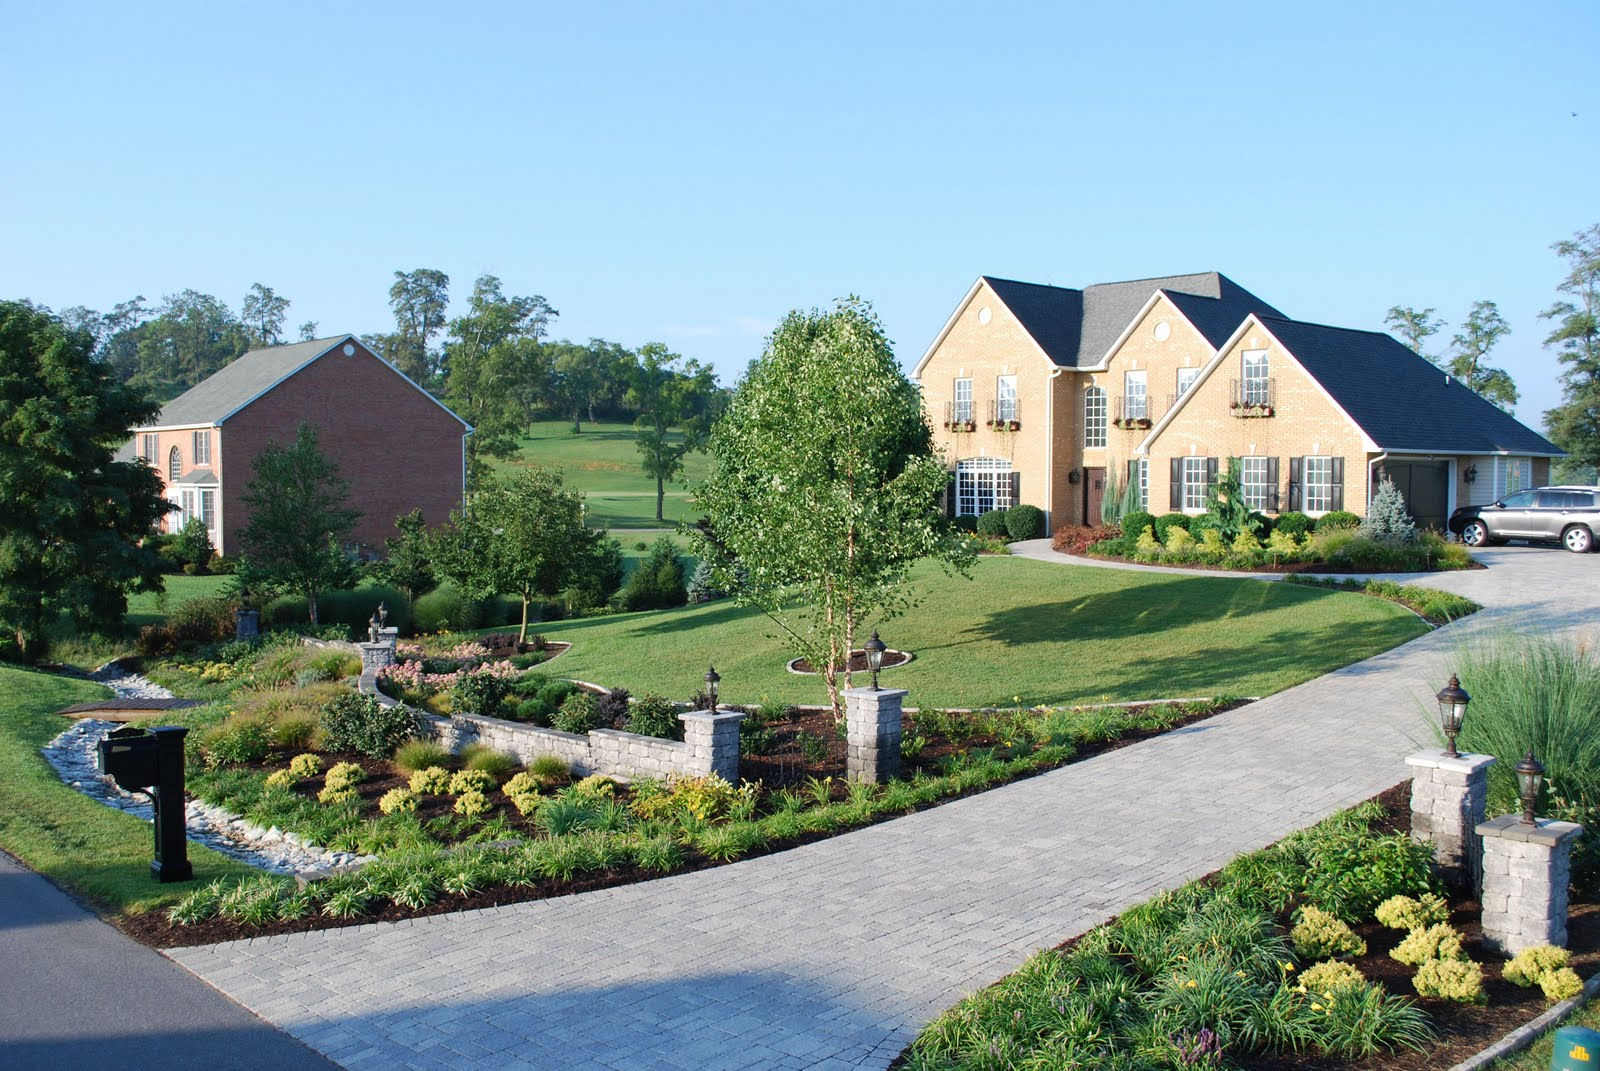 green acres landscaping  award winning landscapes  a front yard facelift for your home